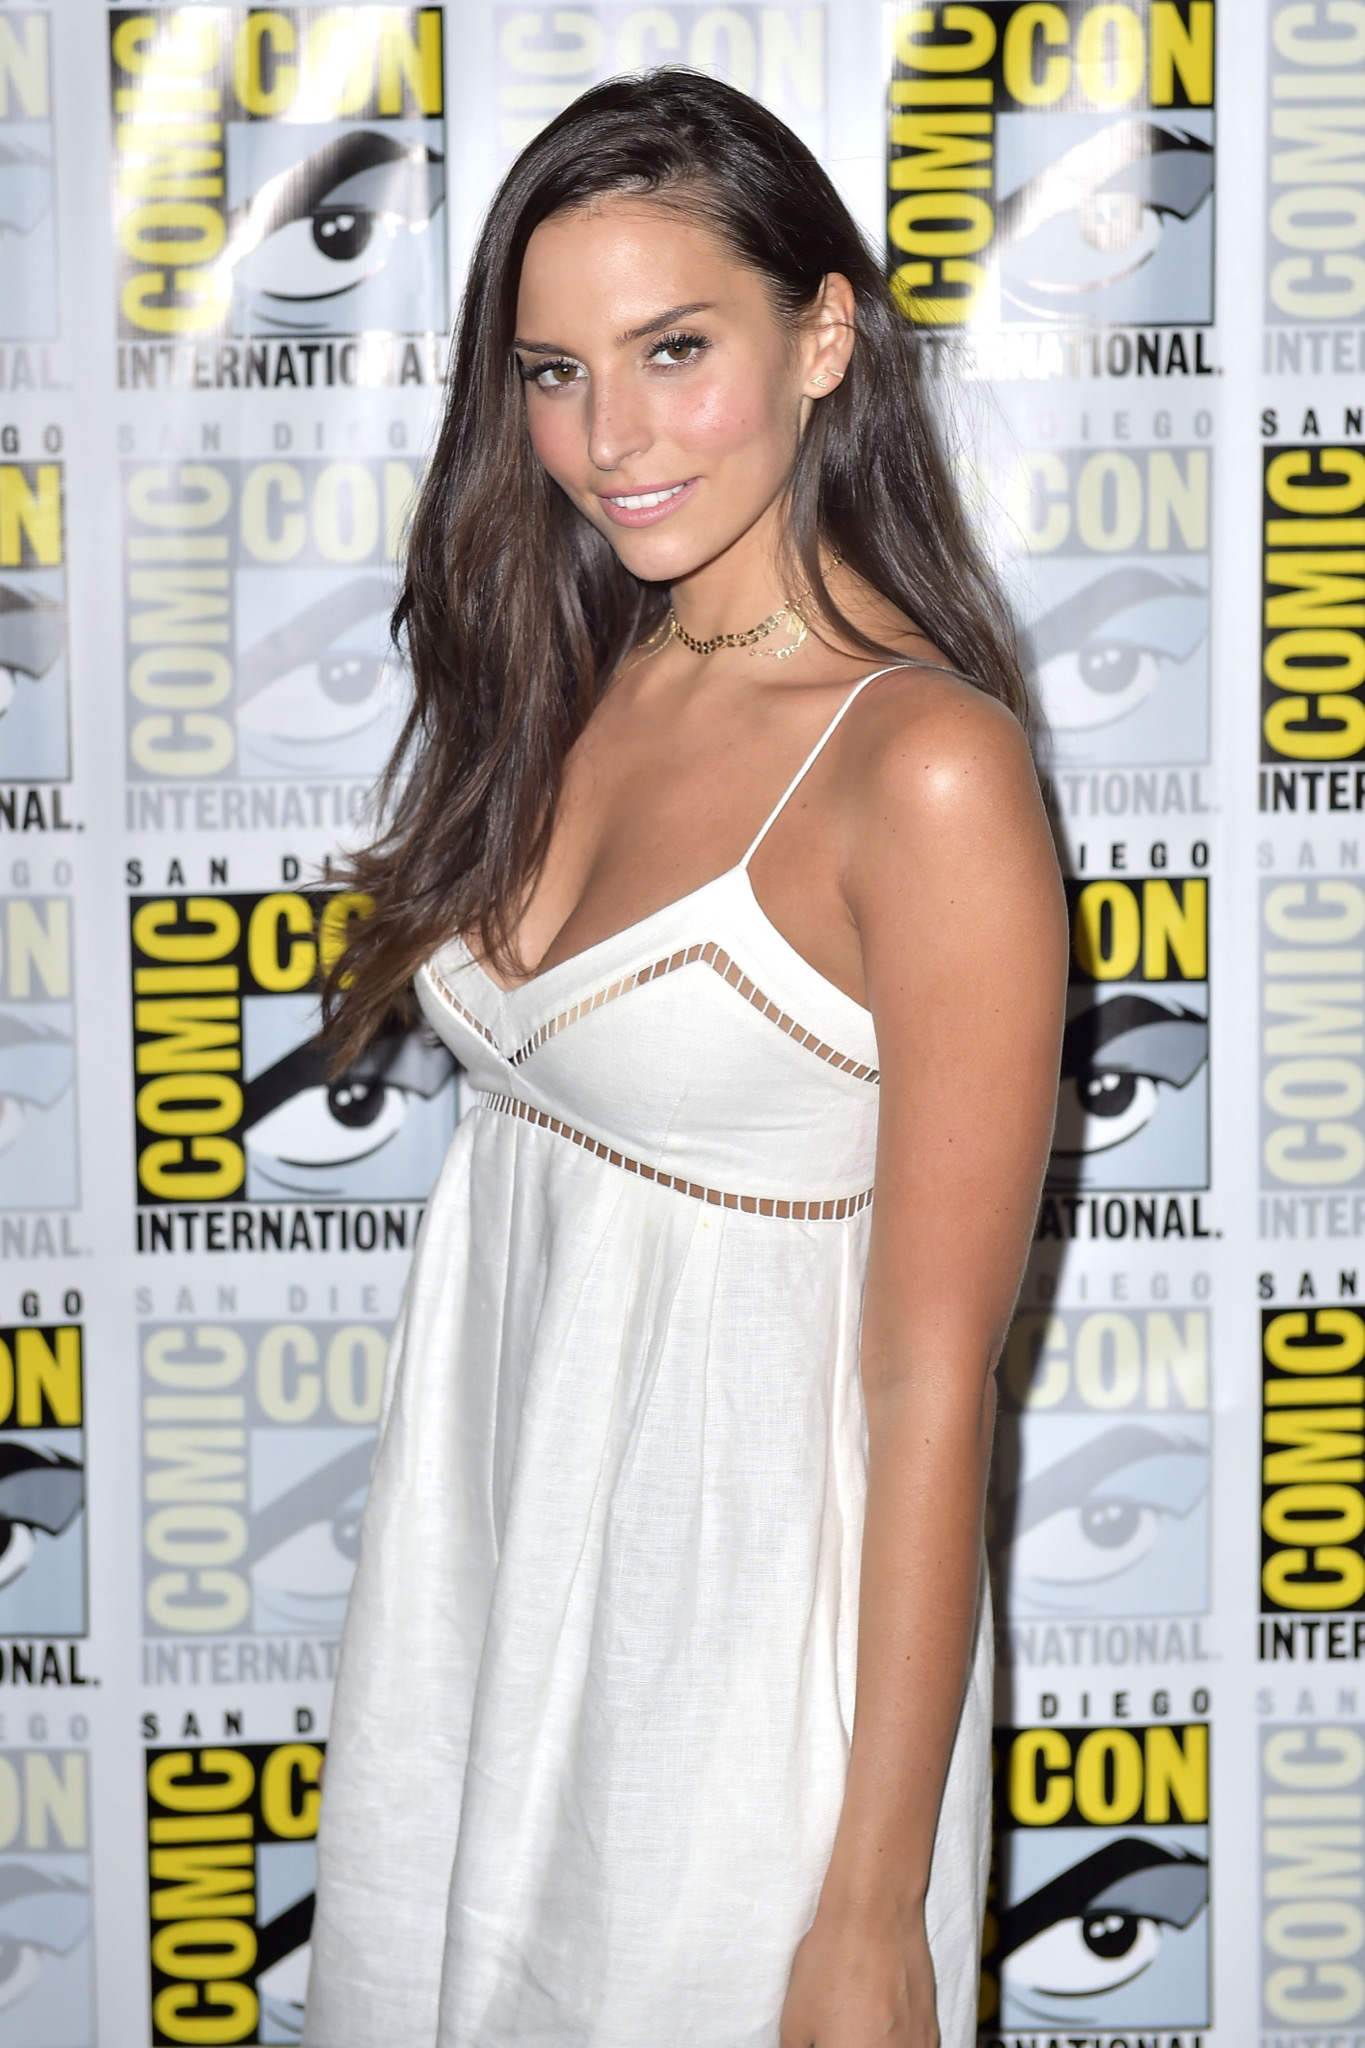 San Diego Comic-Con - Time After Time - Photocall Featuring: Genesis Rodriguez Where: San Diego, Kalifornien, United States When: 23 Jul 2016 Credit: Dave Starbuck/Future Image/WENN.com **Not available for publication in Germany, Poland, Russia, Hungary, Slovenia, Czech Republic, Serbia, Croatia, Slovakia**